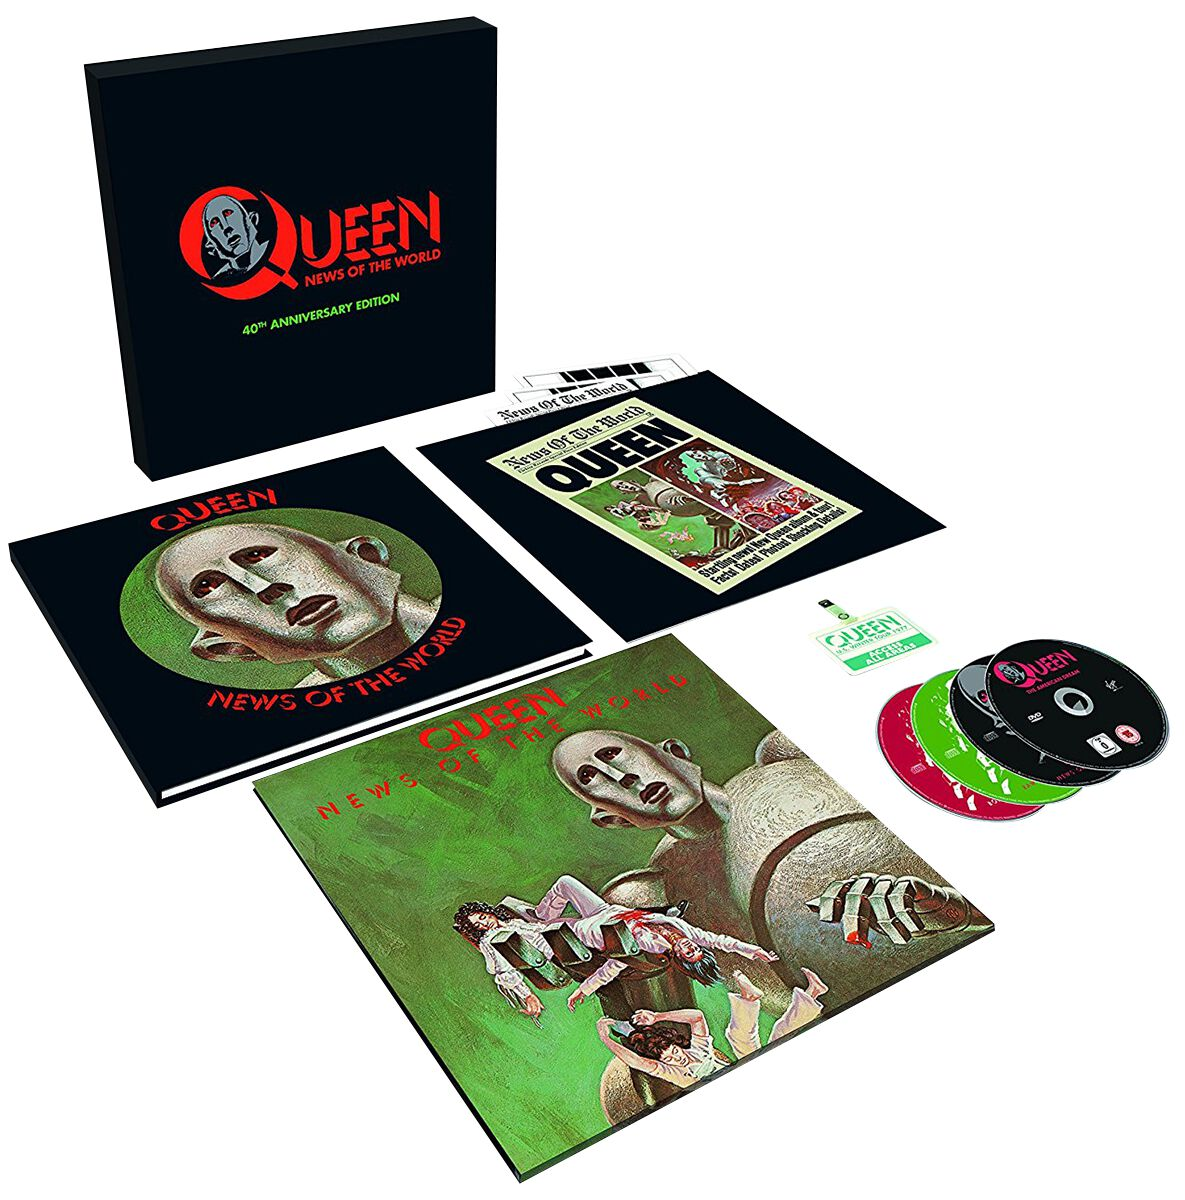 Image of Queen News of the world 3-CD & DVD & LP Standard